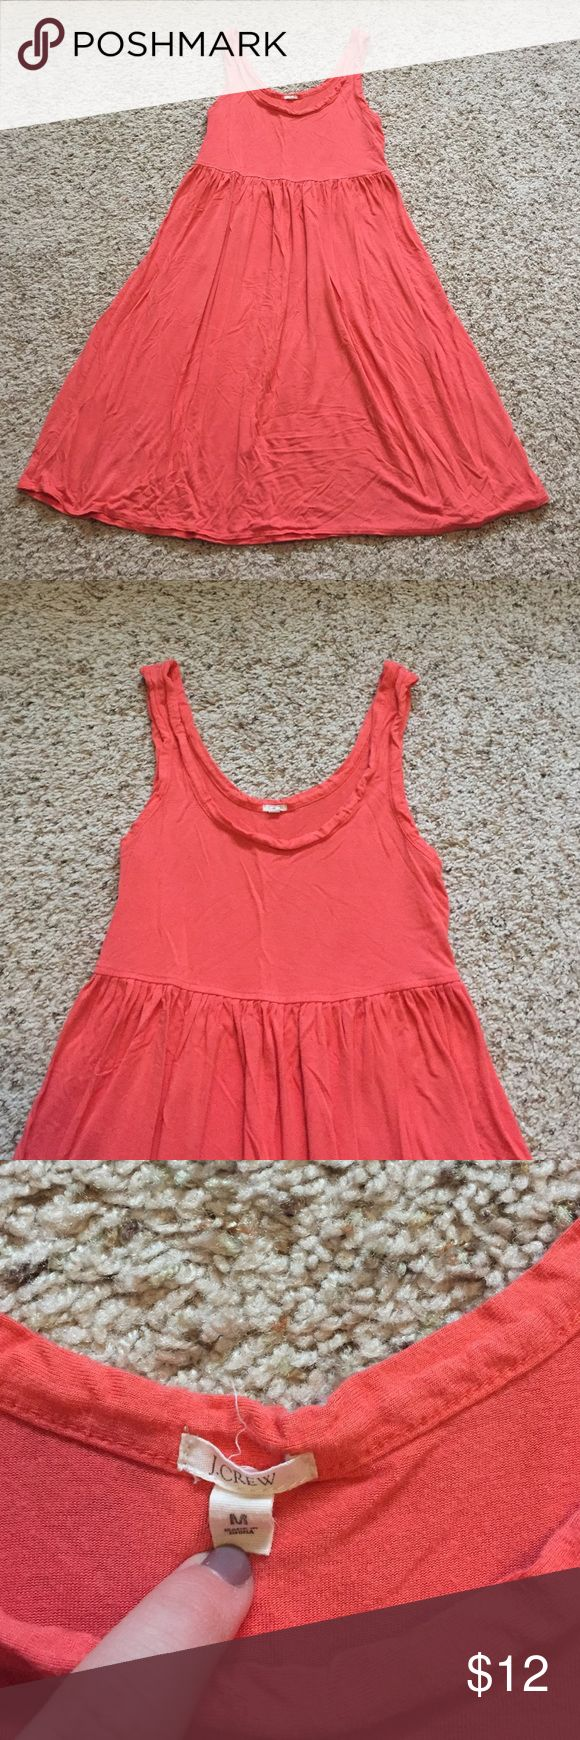 J crew coral sun dress size medium J Crew coral sundress. Size medium. Has been worn, some pilling, still super cute and soft, casual wear! J. Crew Dresses Mini